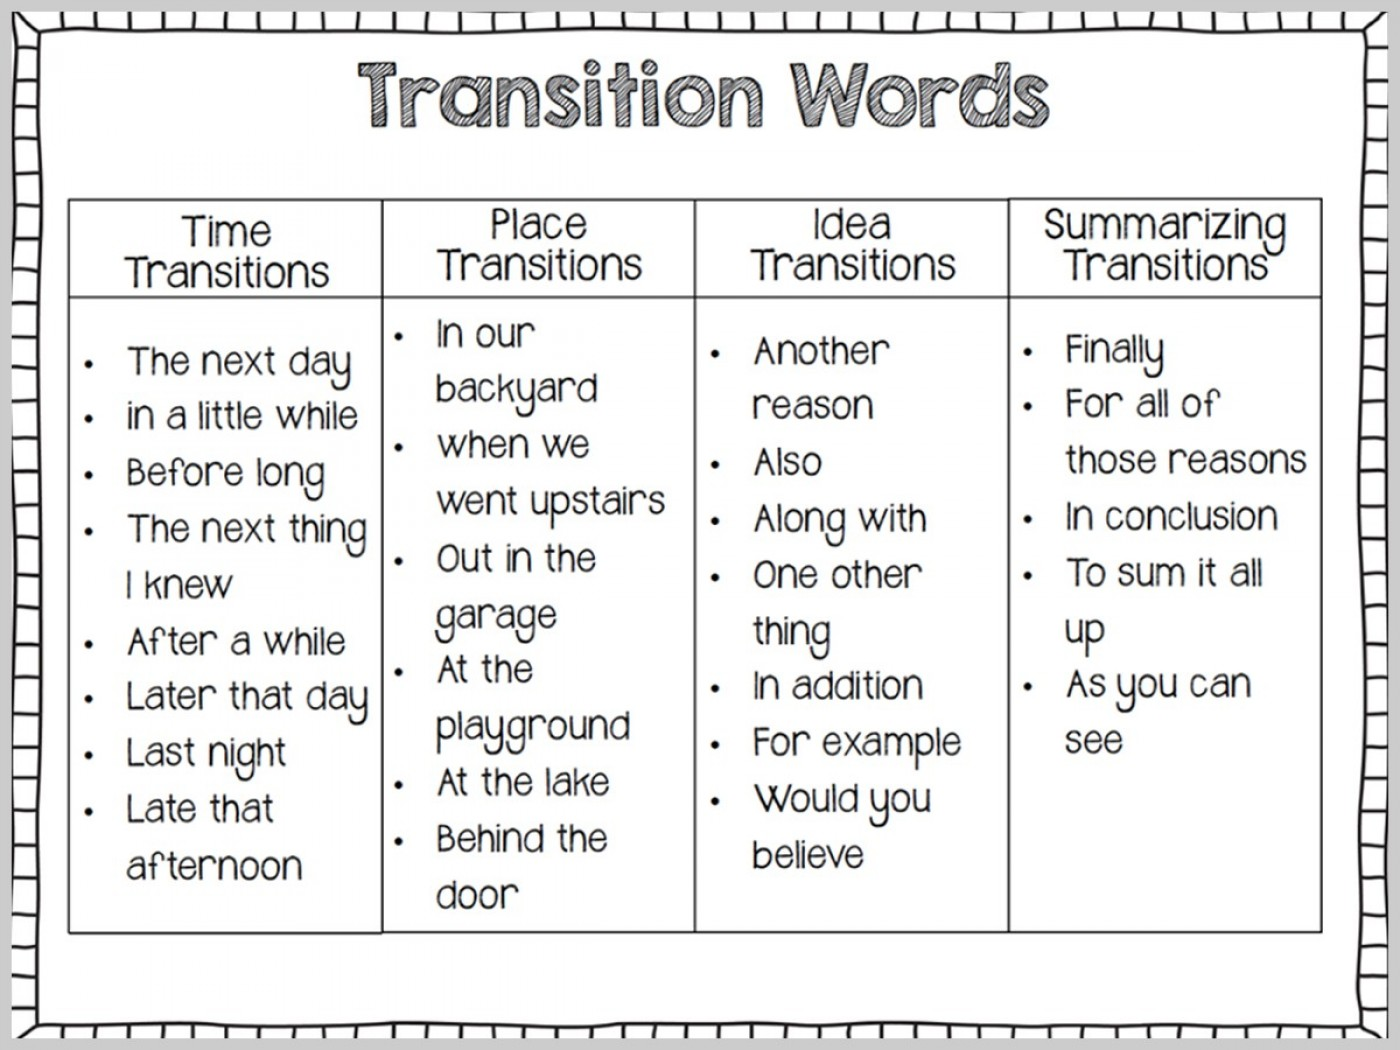 008 Transitions For Essays Essay Example Transition Words